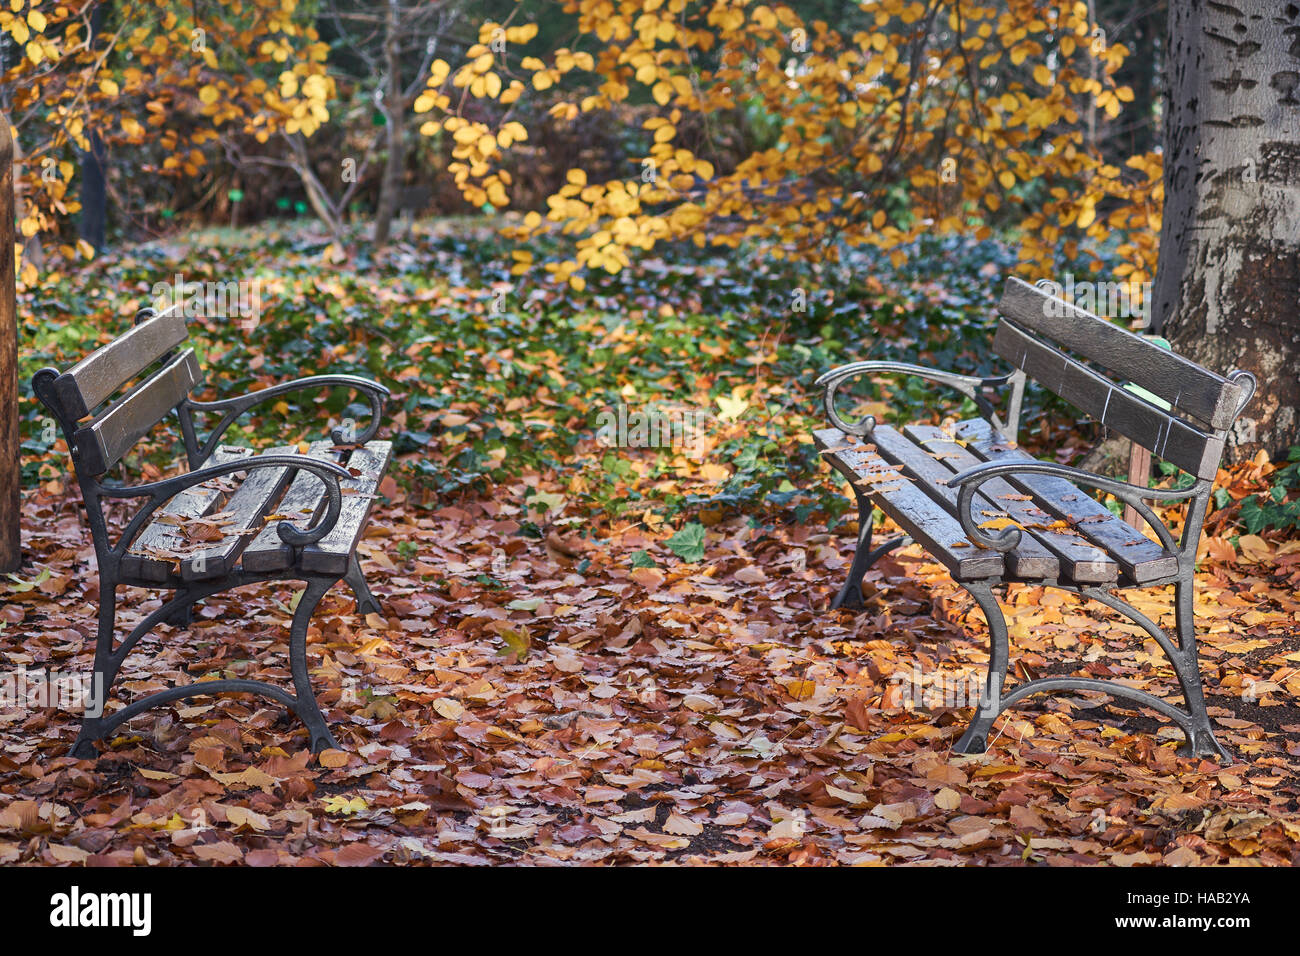 Des bancs vides entre les feuilles mortes nostalgie Photo Stock